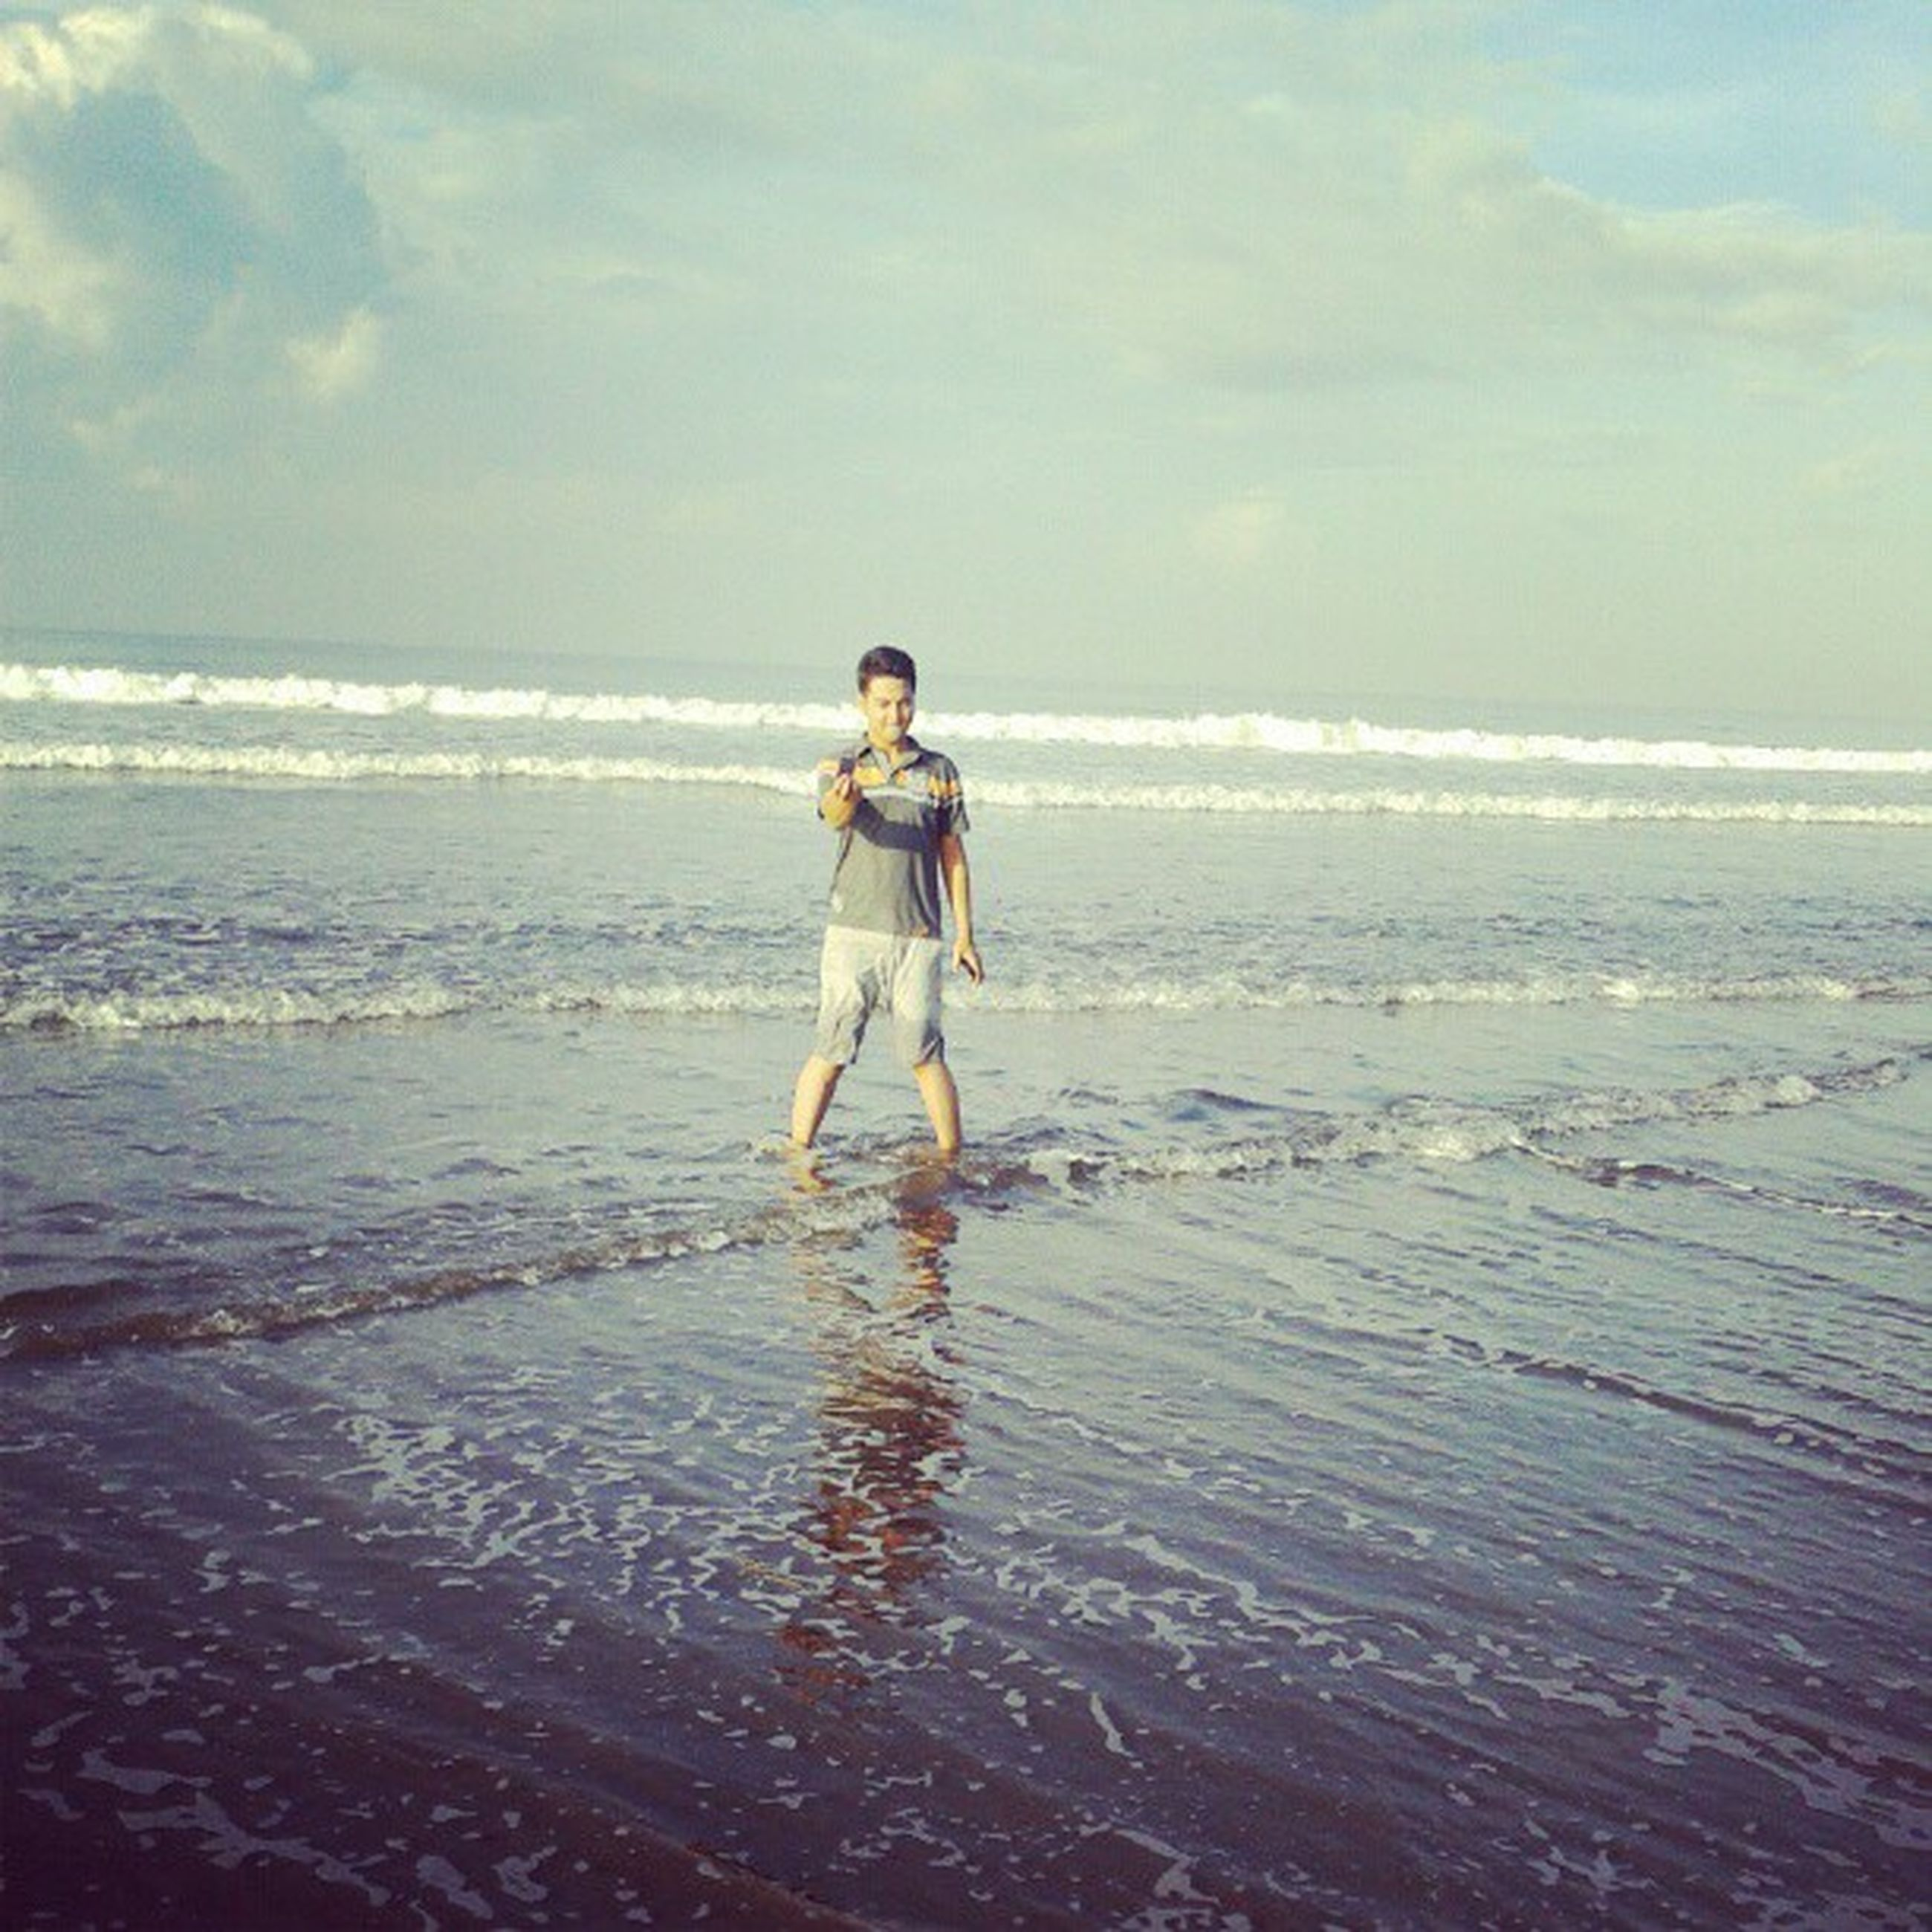 beach, sea, horizon over water, water, full length, shore, sky, lifestyles, leisure activity, sand, casual clothing, childhood, vacations, standing, tranquility, rear view, tranquil scene, scenics